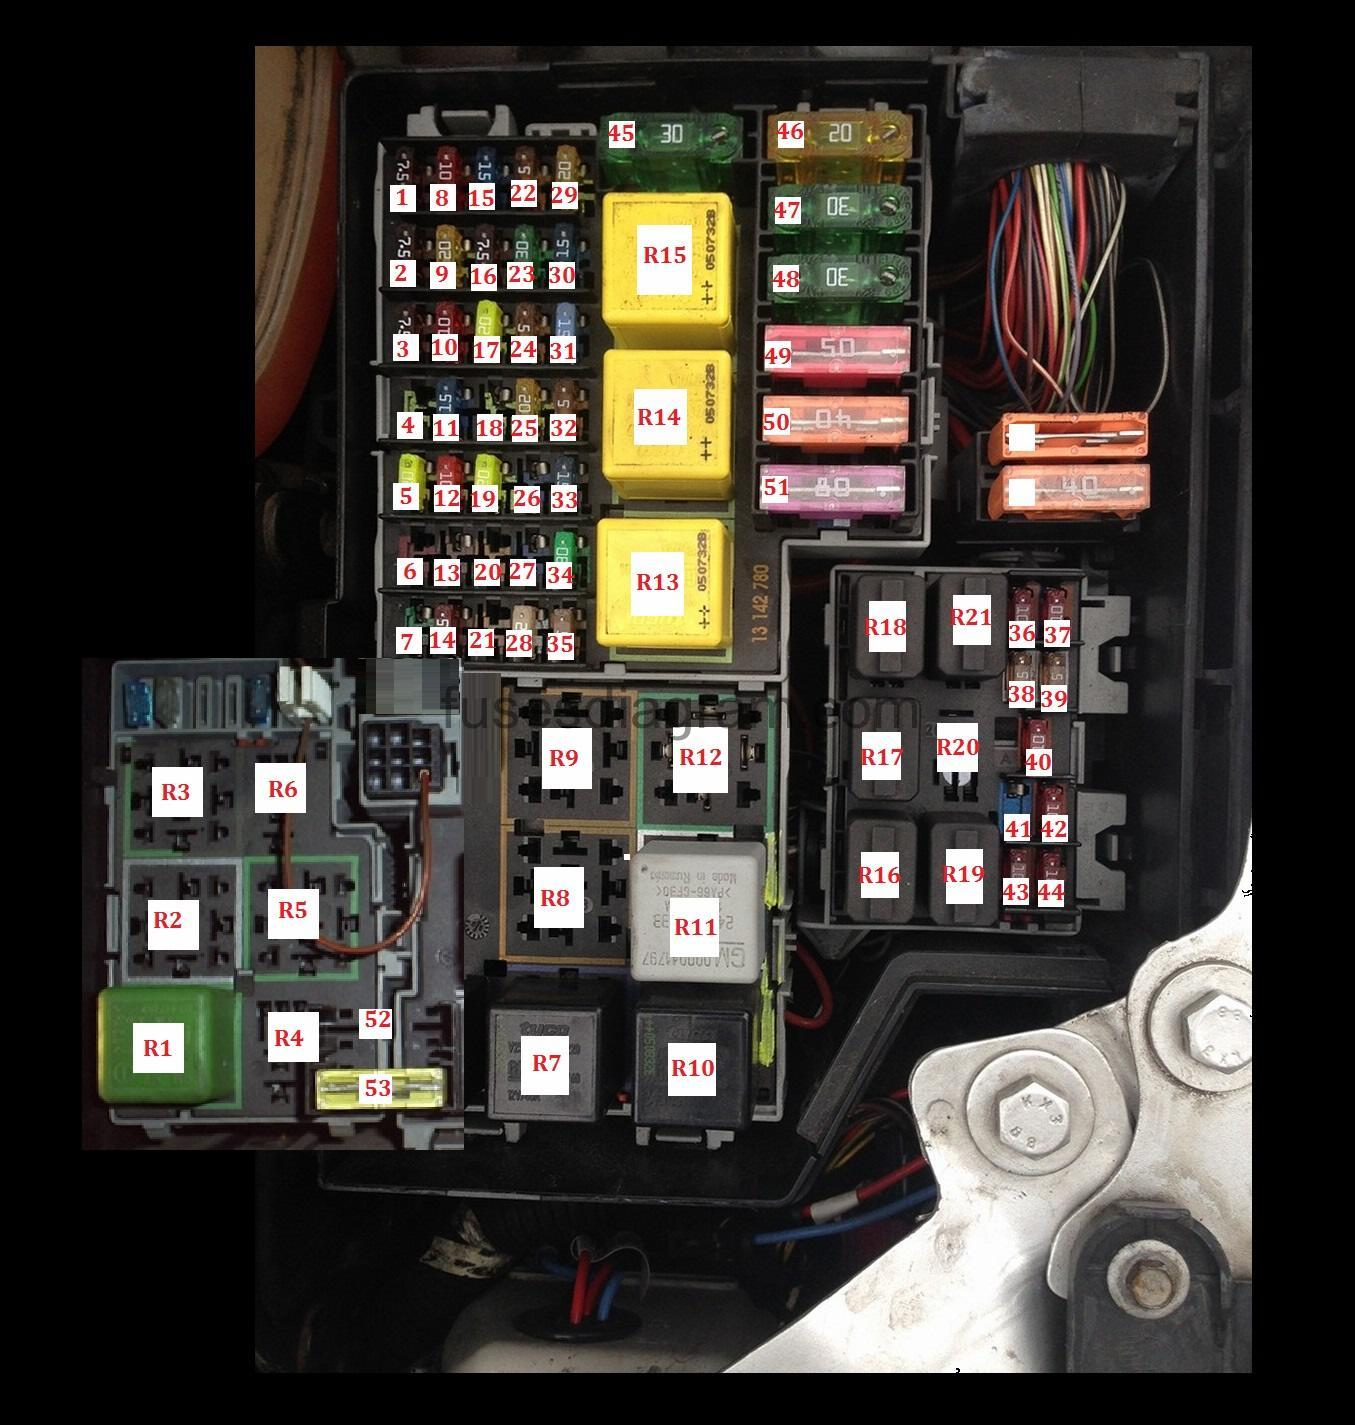 Fuse Box Opel Vauxhall Corsa C 2008 Honda Element Diagram